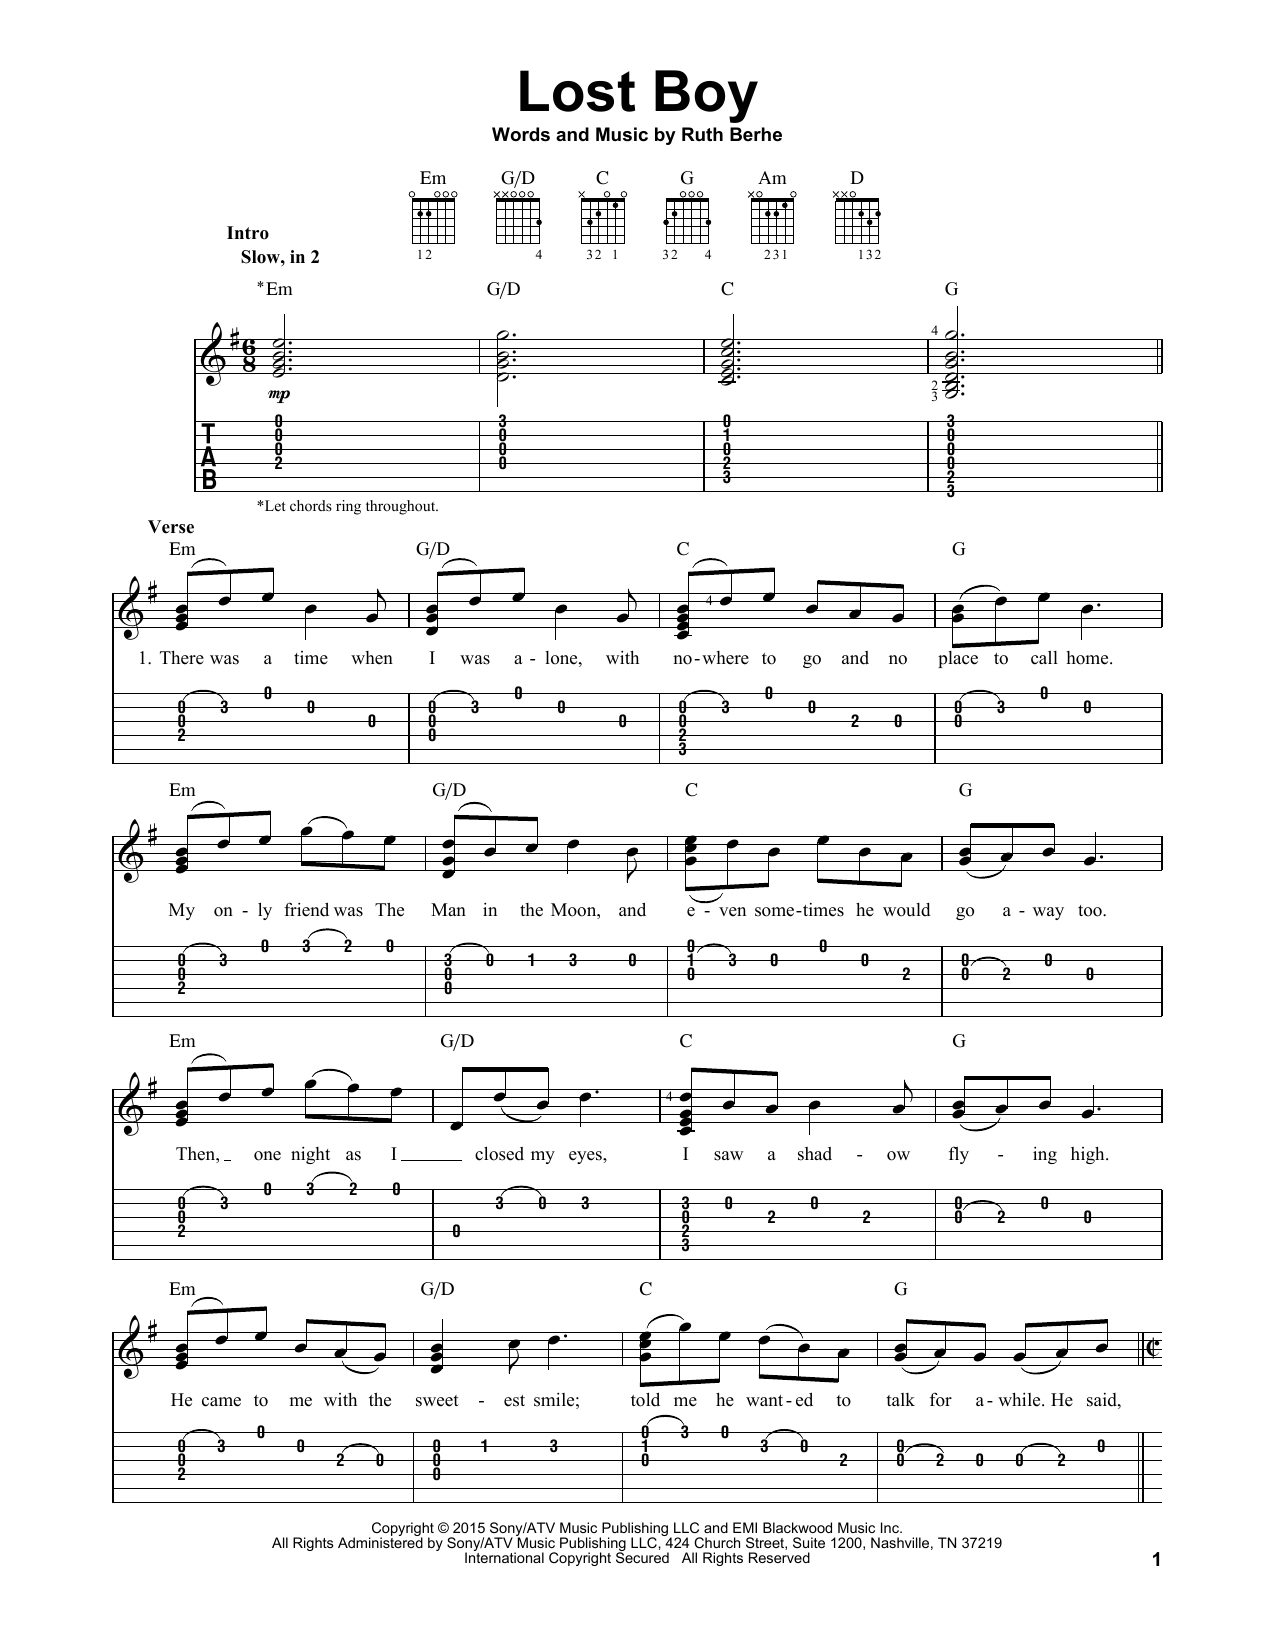 Guitar tabs ready to start dating